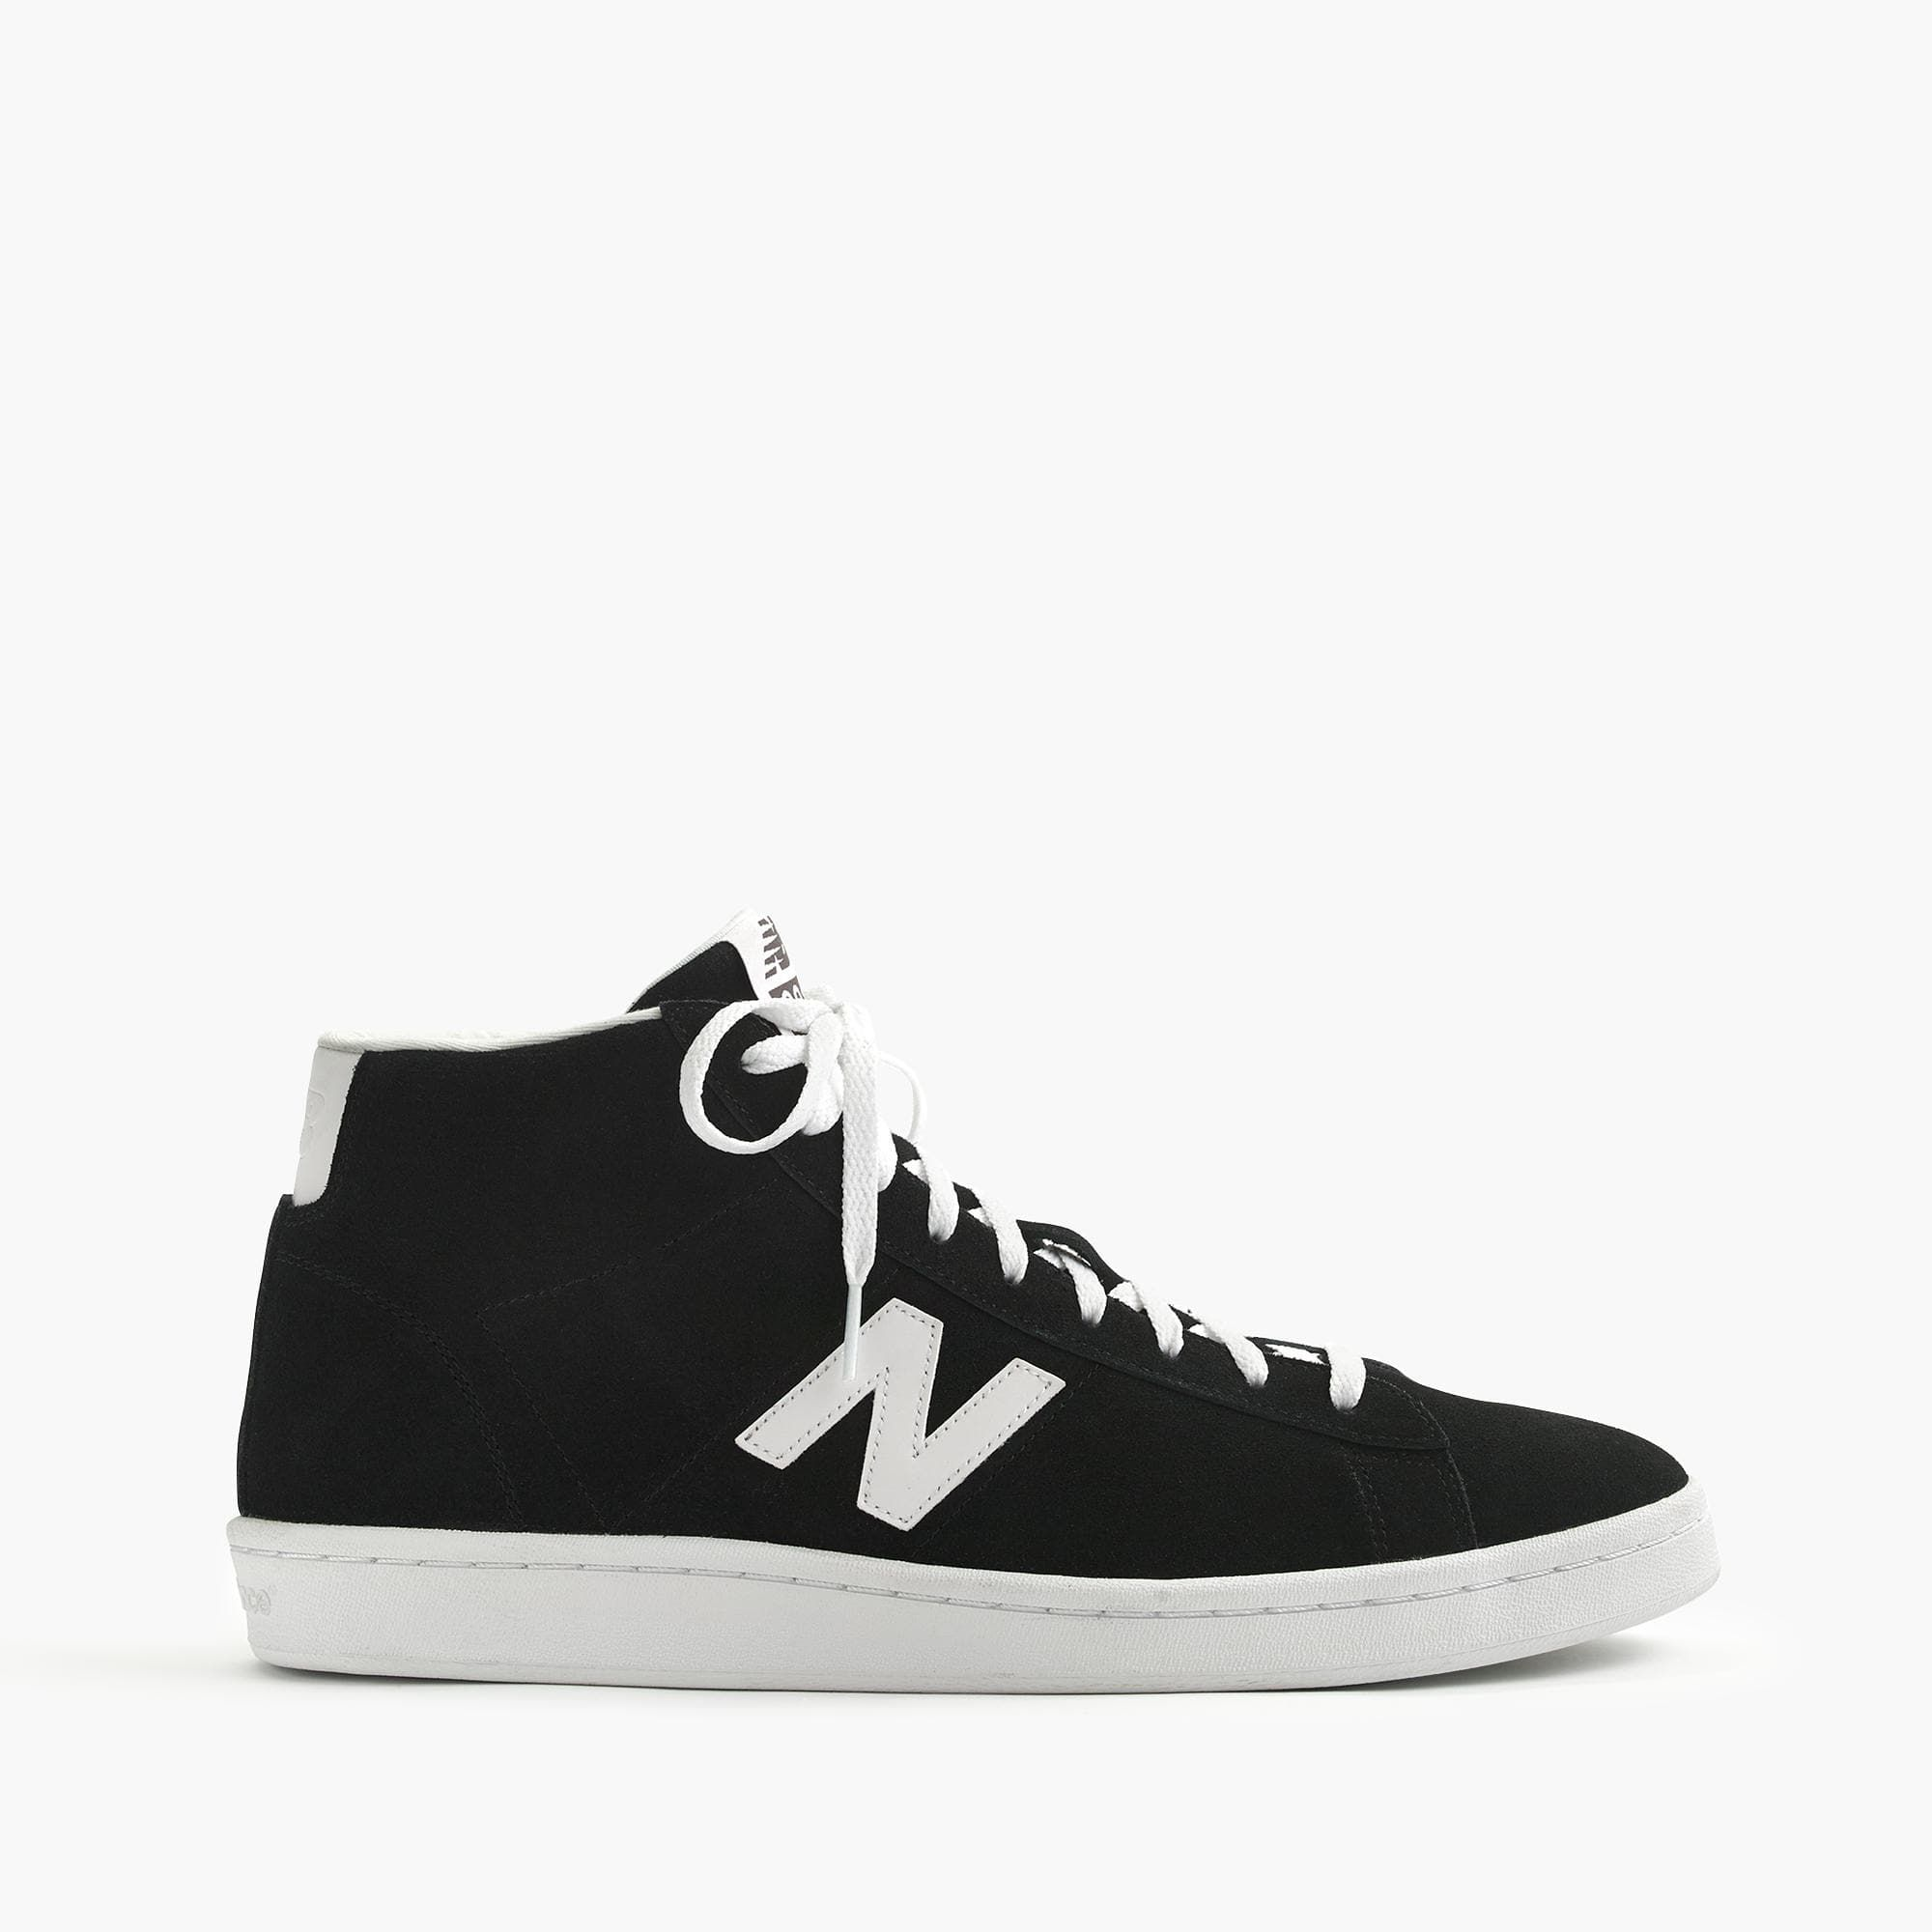 Imported From Abroad Mens Lanvin Classic LoTop Sneakers Outlet Store